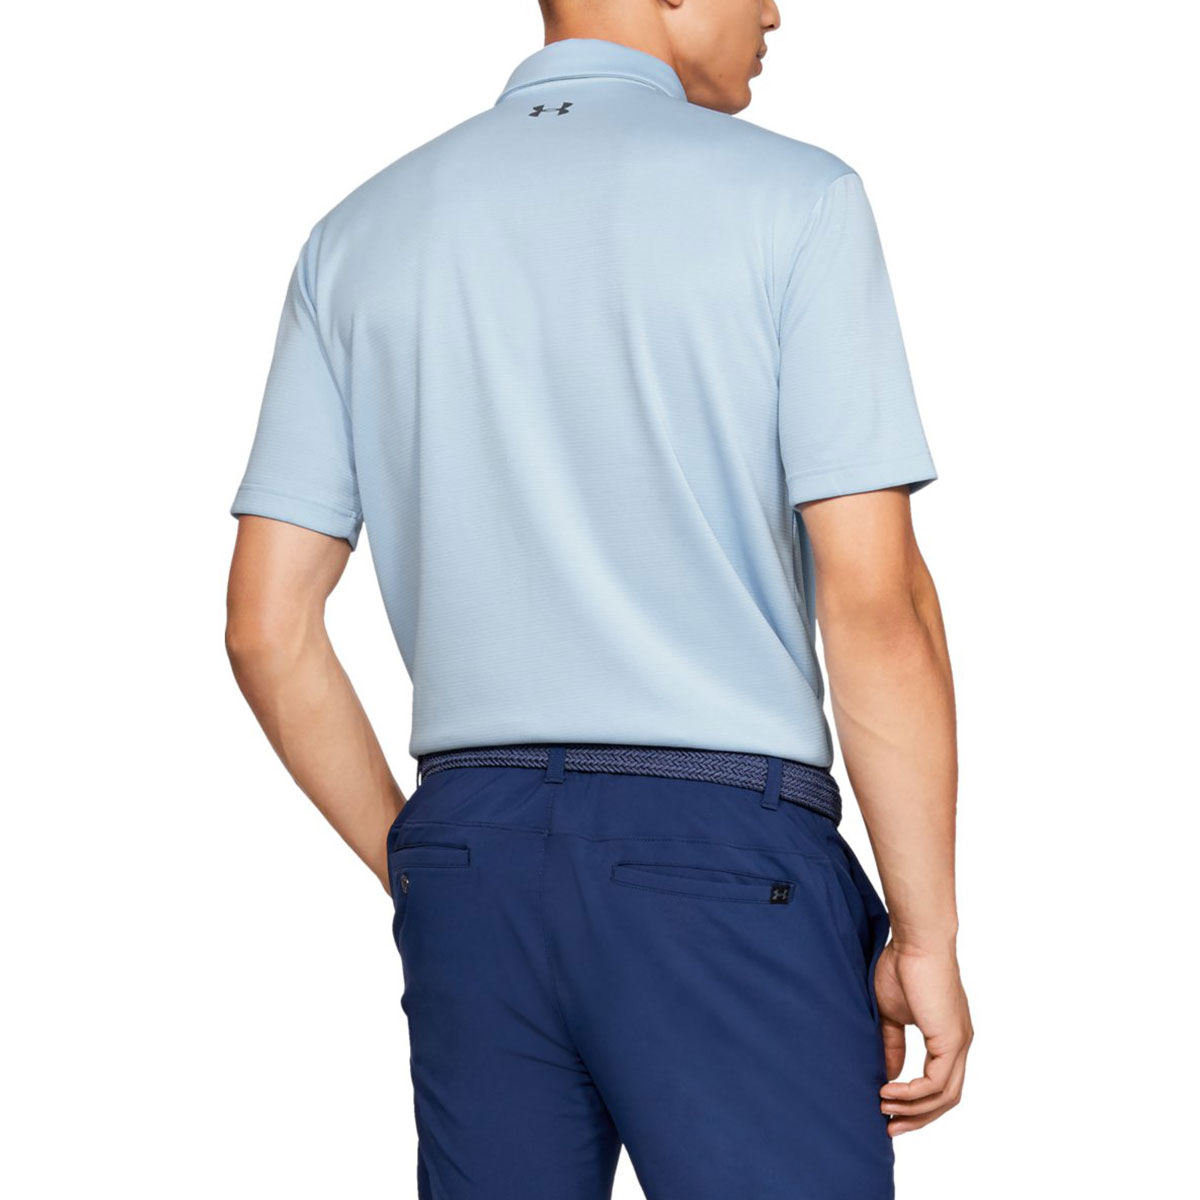 Under-Armour-Mens-Golf-Tech-Wicking-Textured-Soft-Light-Polo-Shirt thumbnail 25